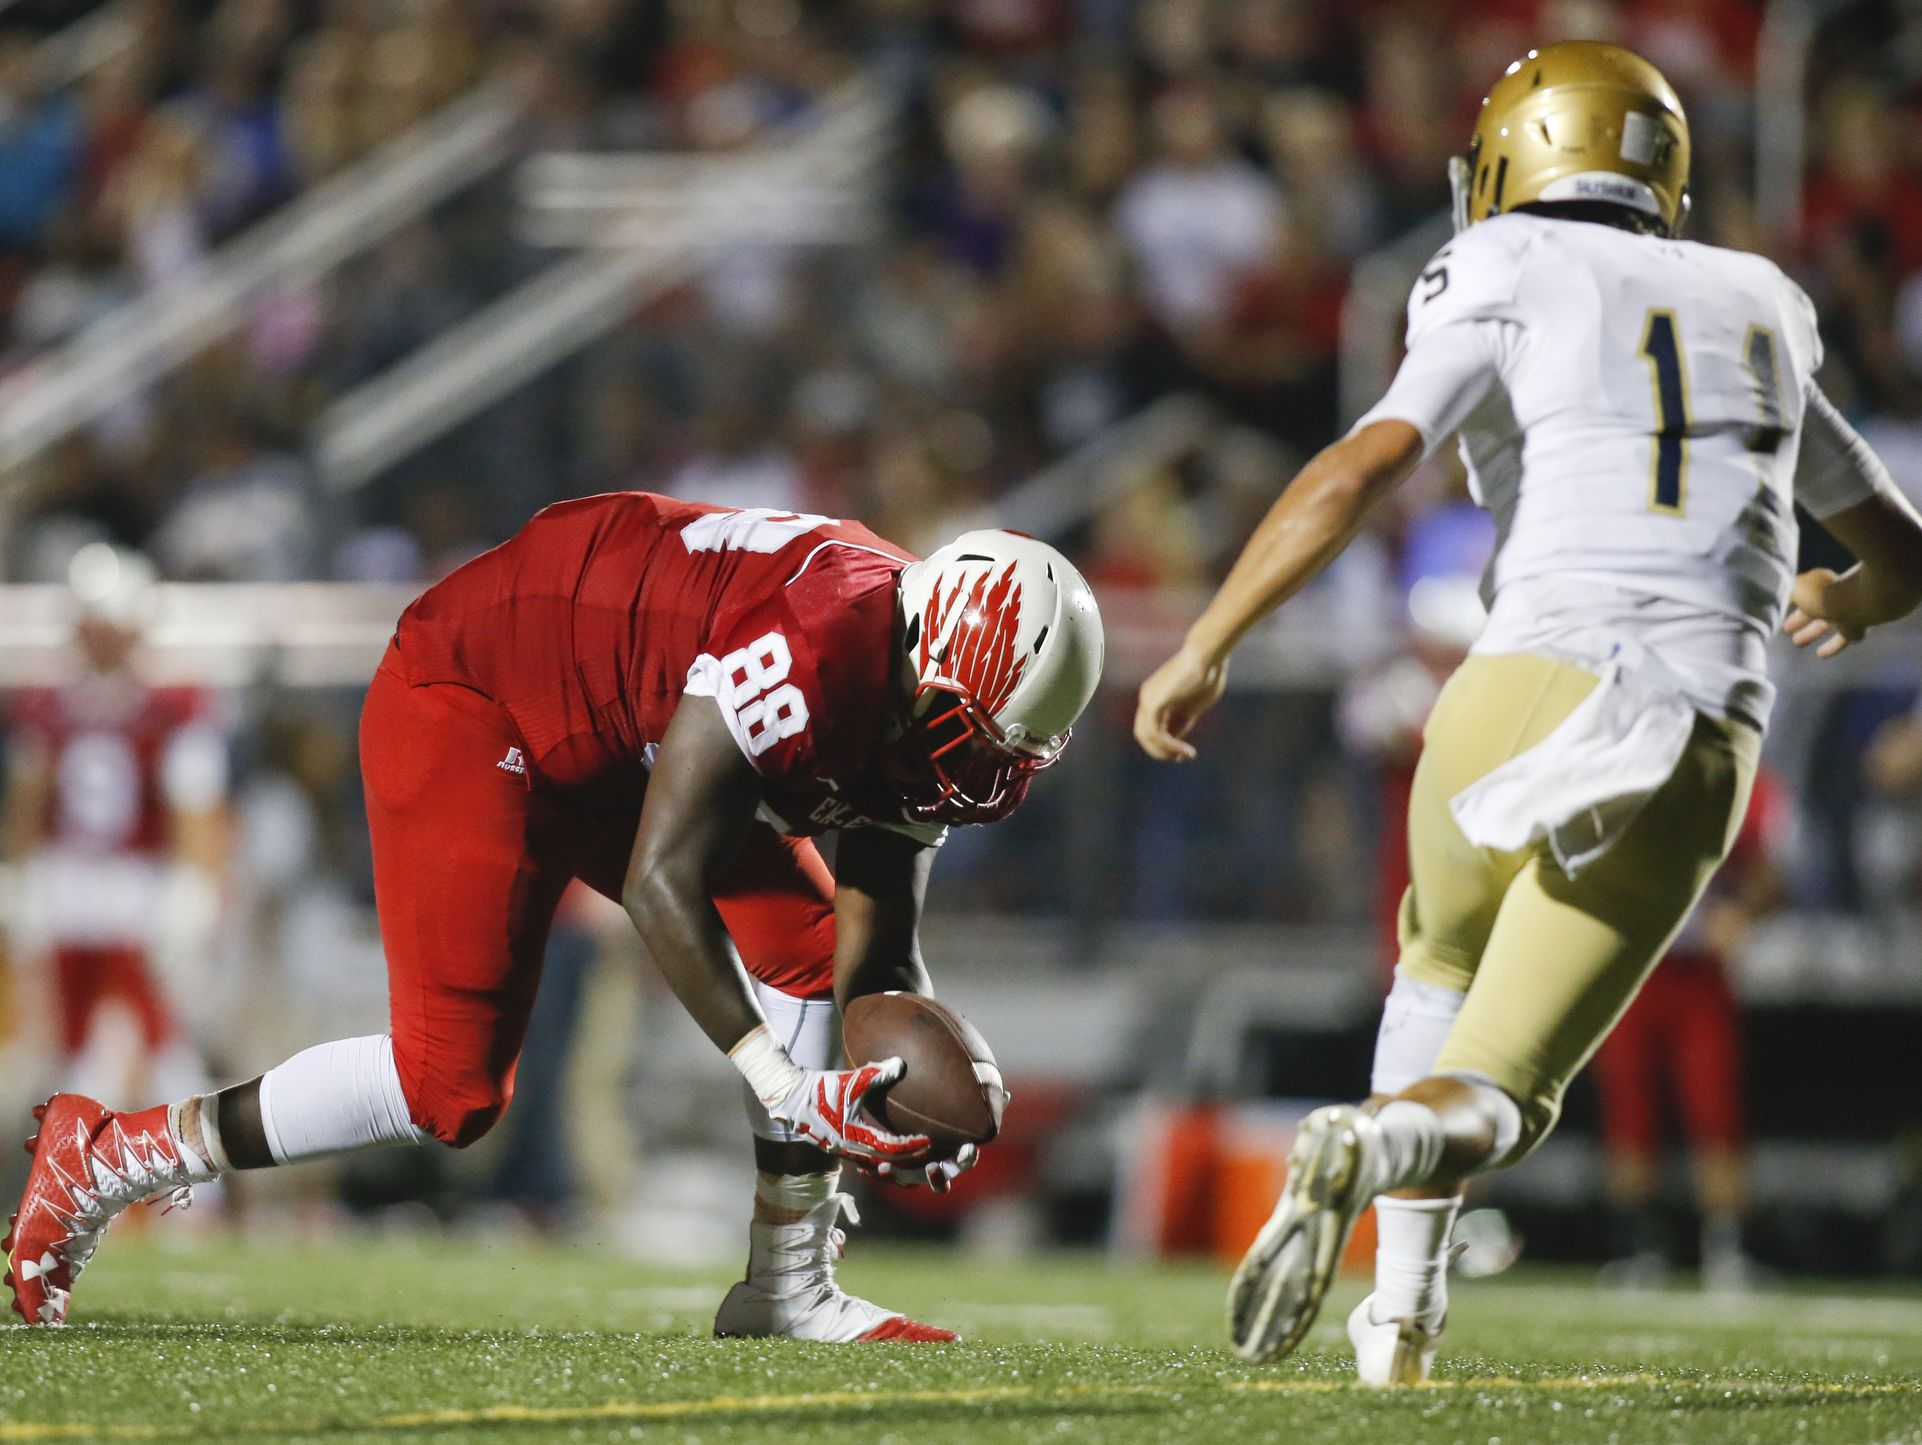 Smyrna defensive lineman Jamier Smith grabs a fumble in front of Salesianum quarterback Zach Gwynn during the Eagles' 60-26 win on Sept. 23.